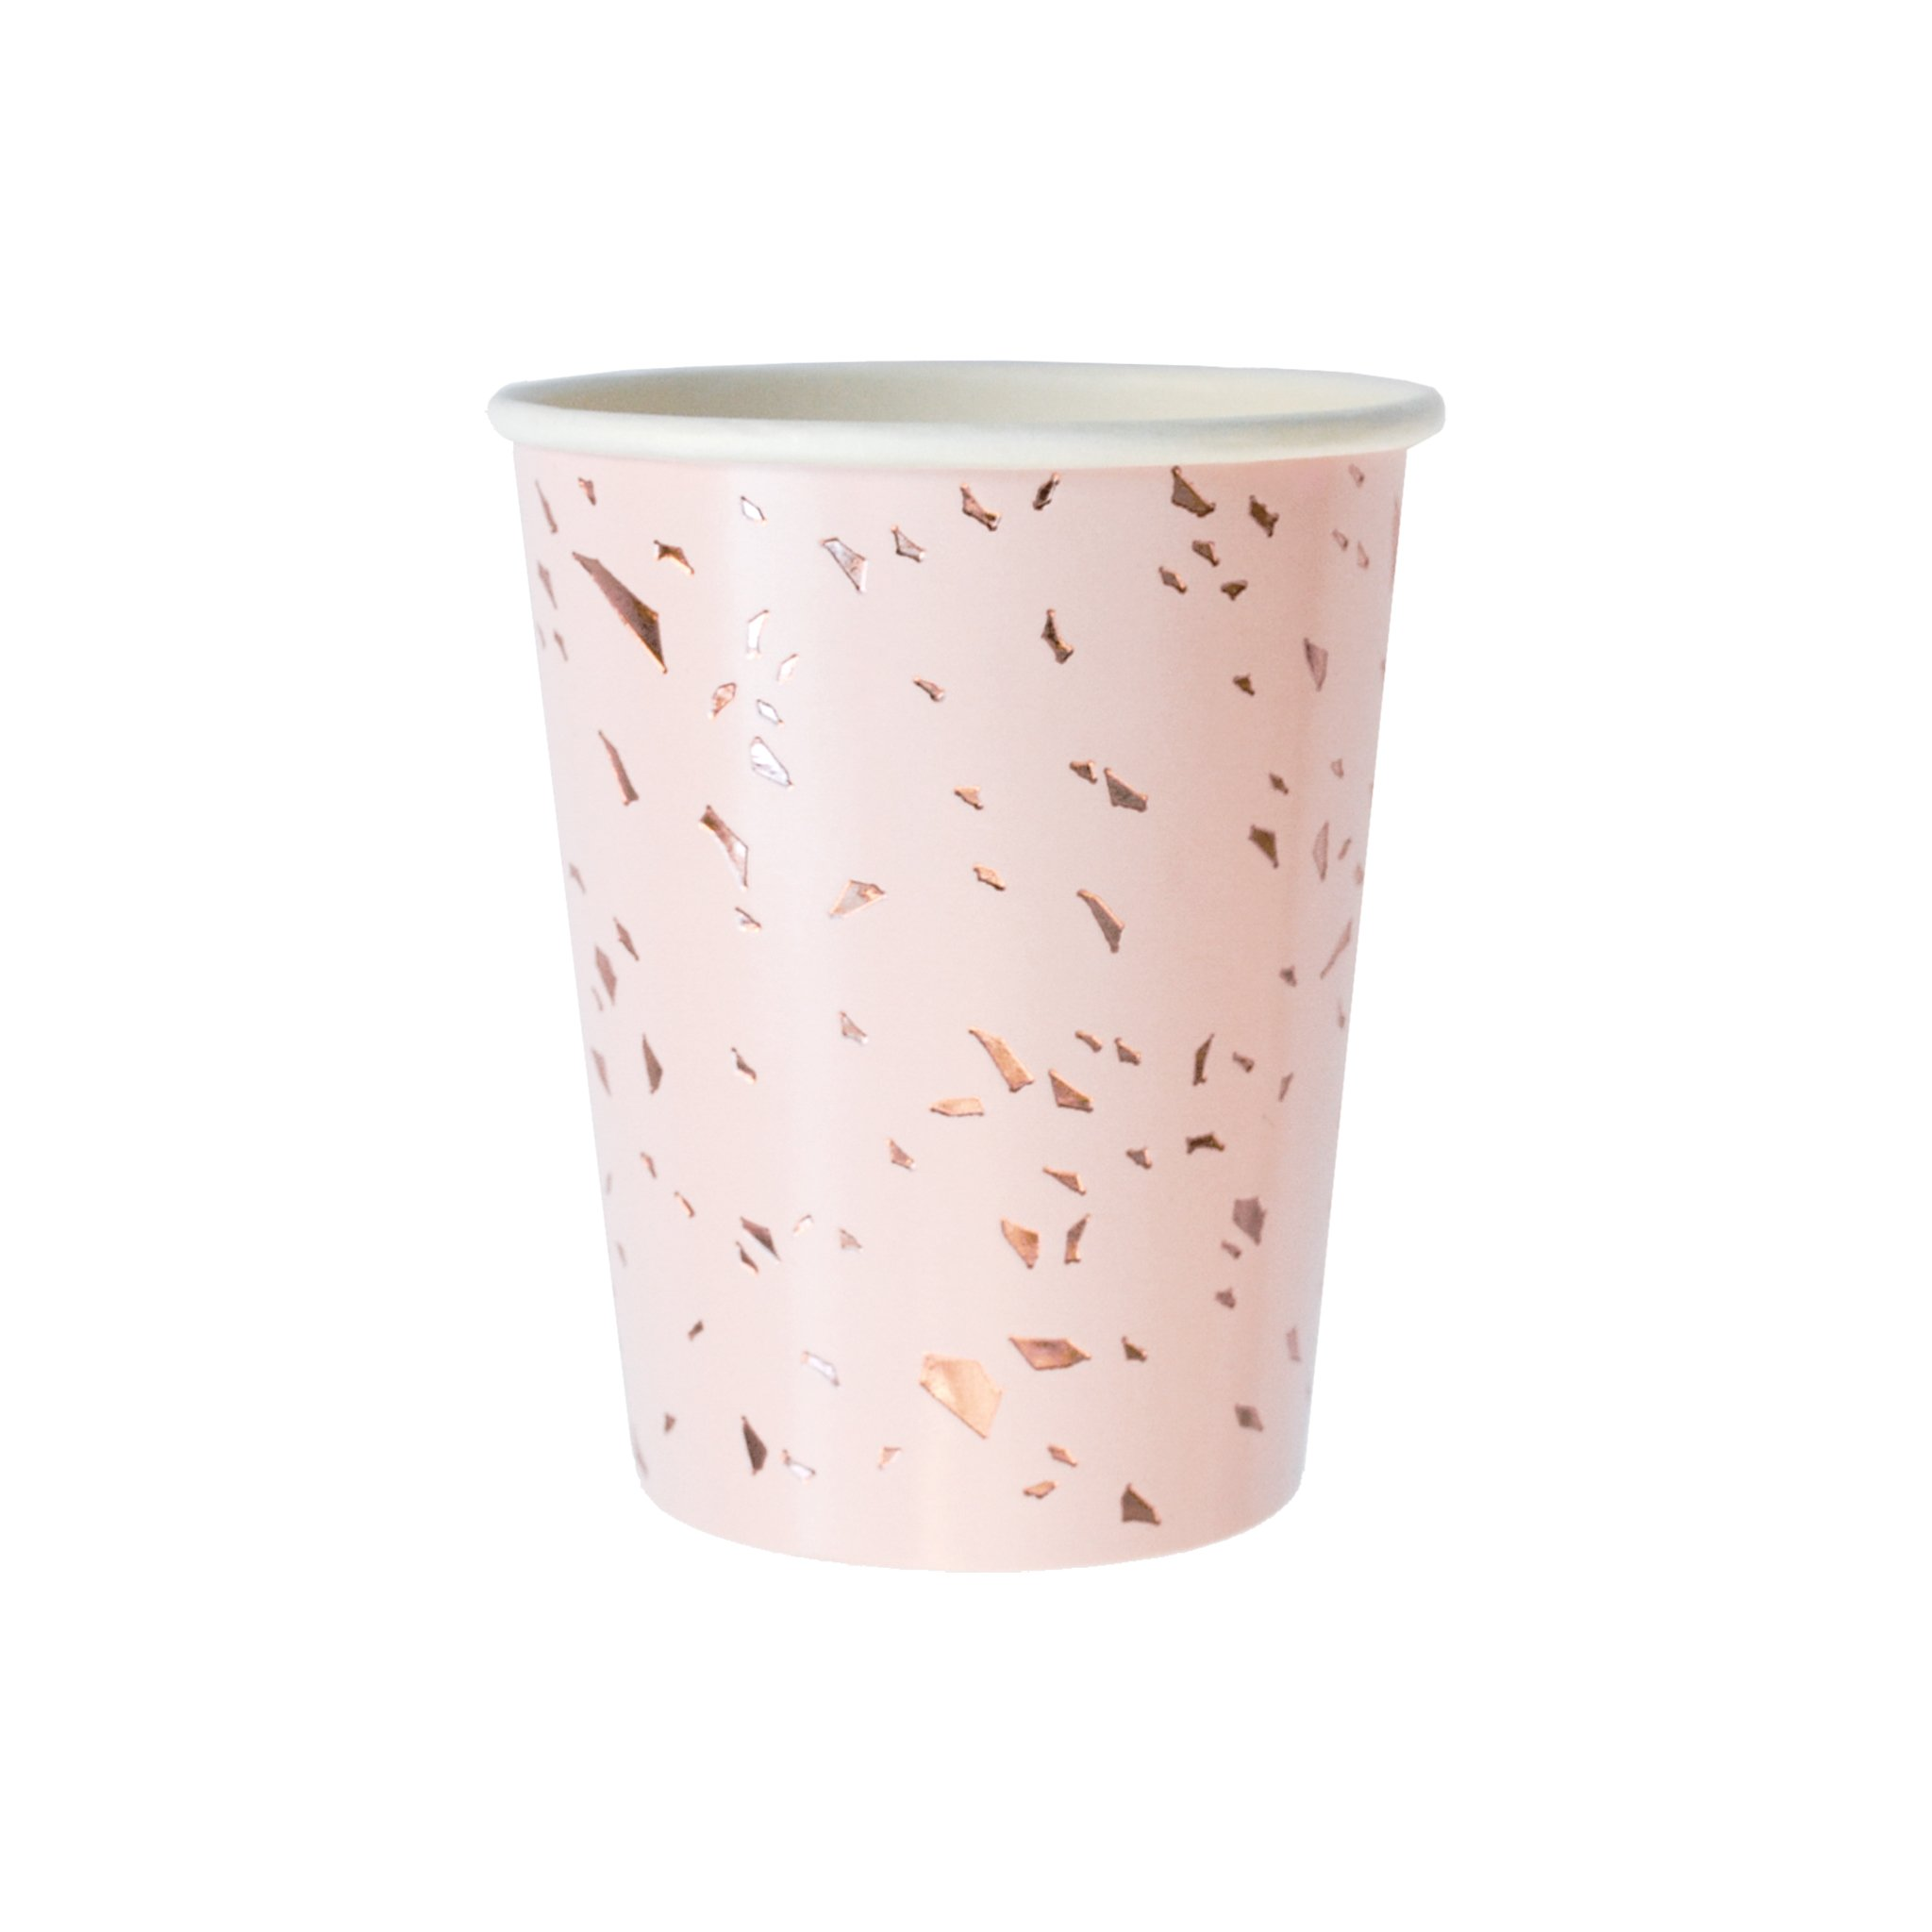 Harlow & Grey Pale Pink w Gold Confetti Paper Cups - Birthday, Wedding, Showers Party Disposable Cups Manhattan (8 Count)